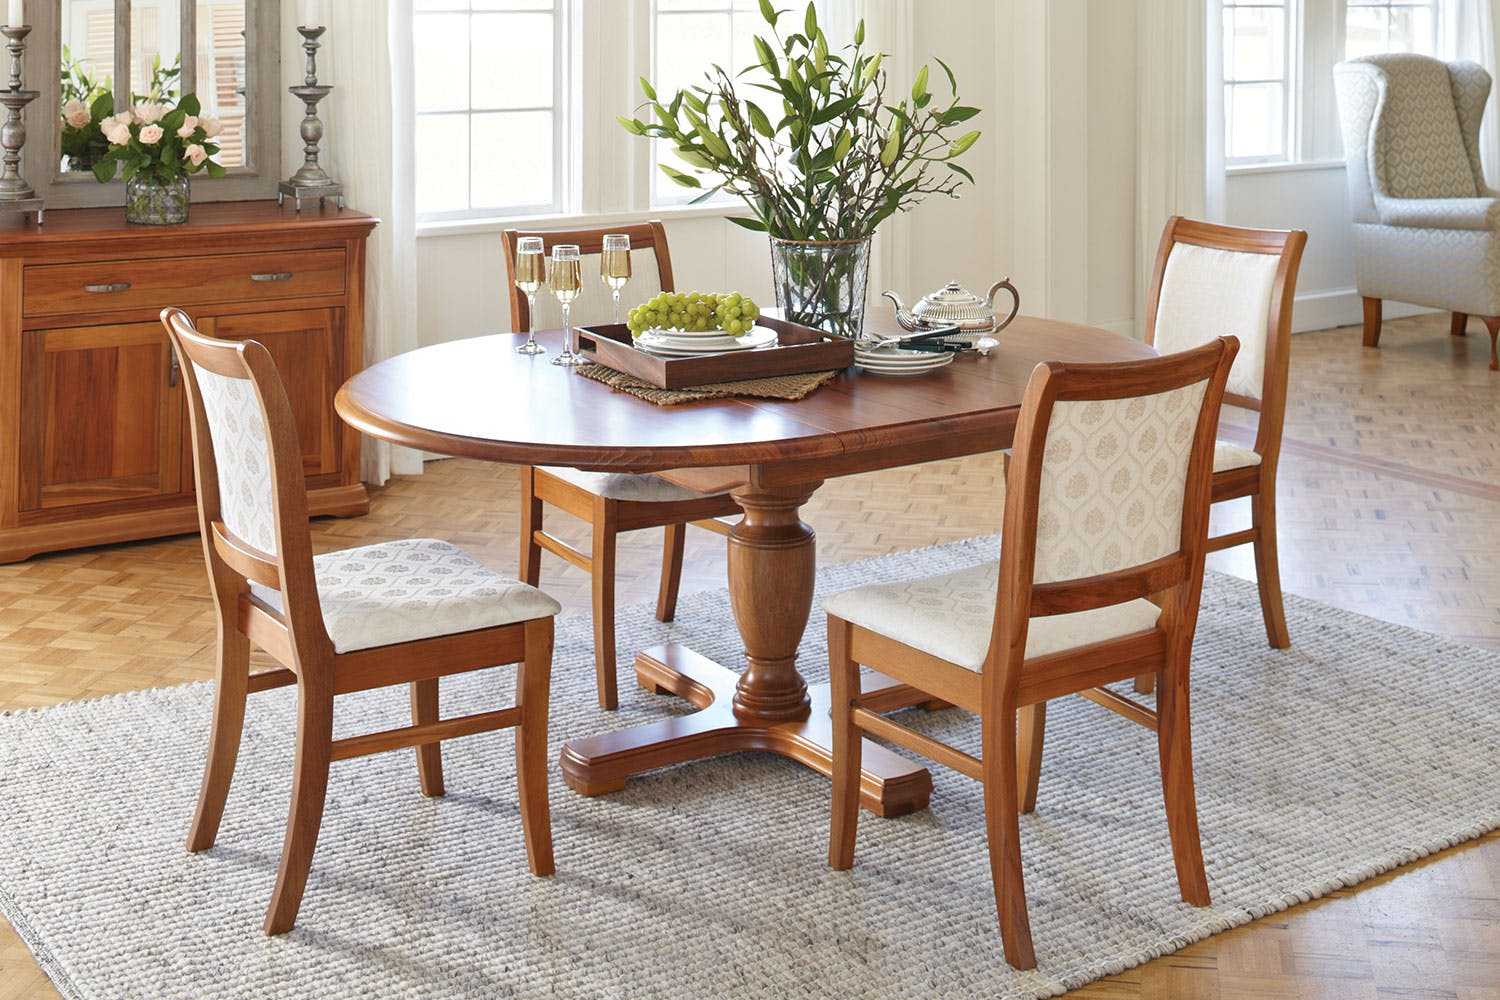 opera round dining table by sorensen furniture harvey norman new